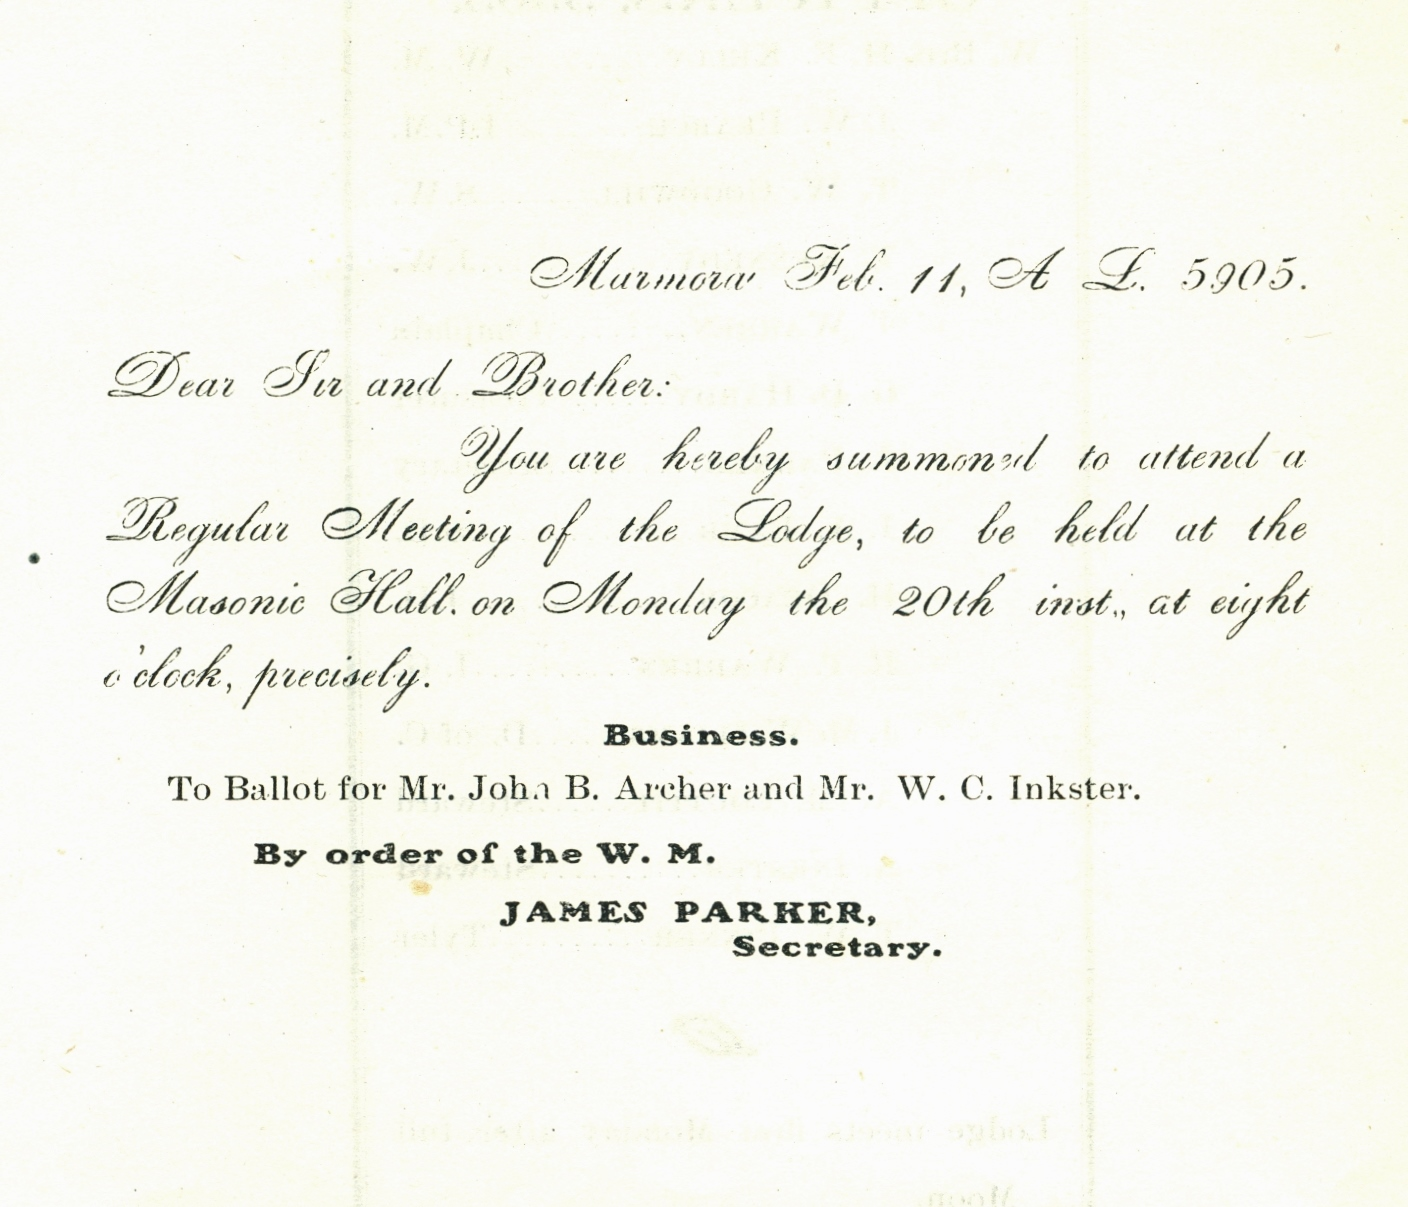 letter dated 5905 or 1905